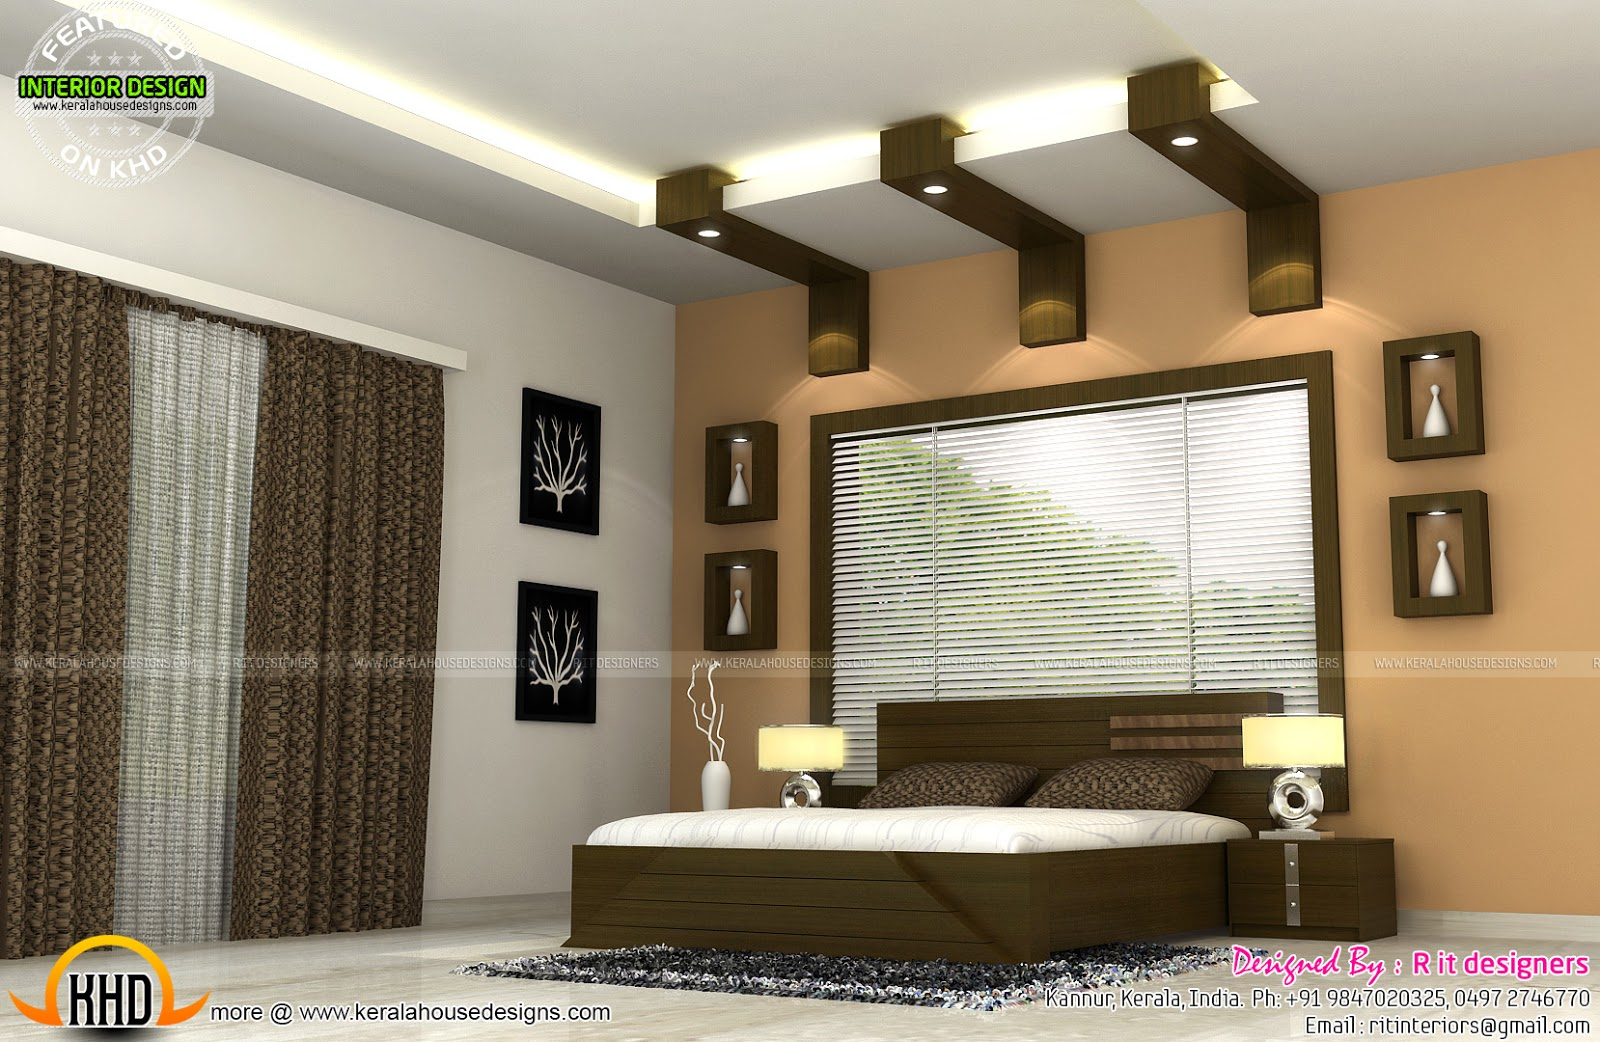 Interiors of bedrooms and kitchen kerala home design and for House interior design photos